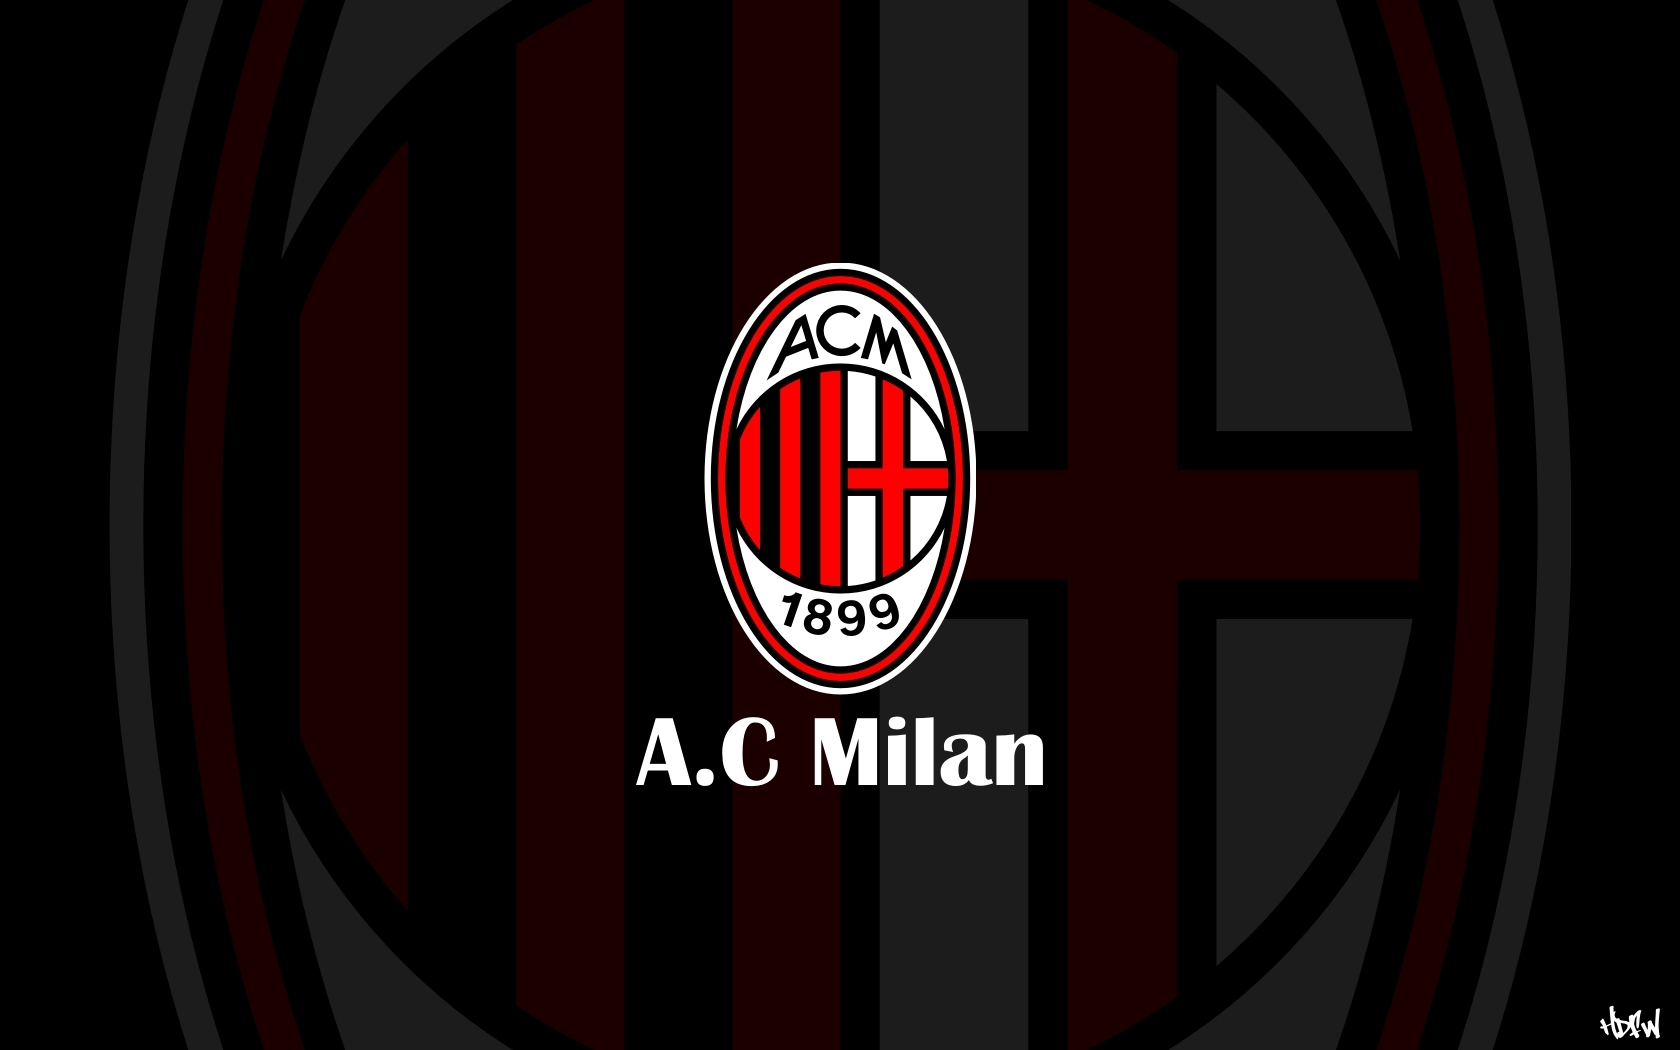 [48+] Ac Milan Logo Wallpaper 2015 on WallpaperSafari